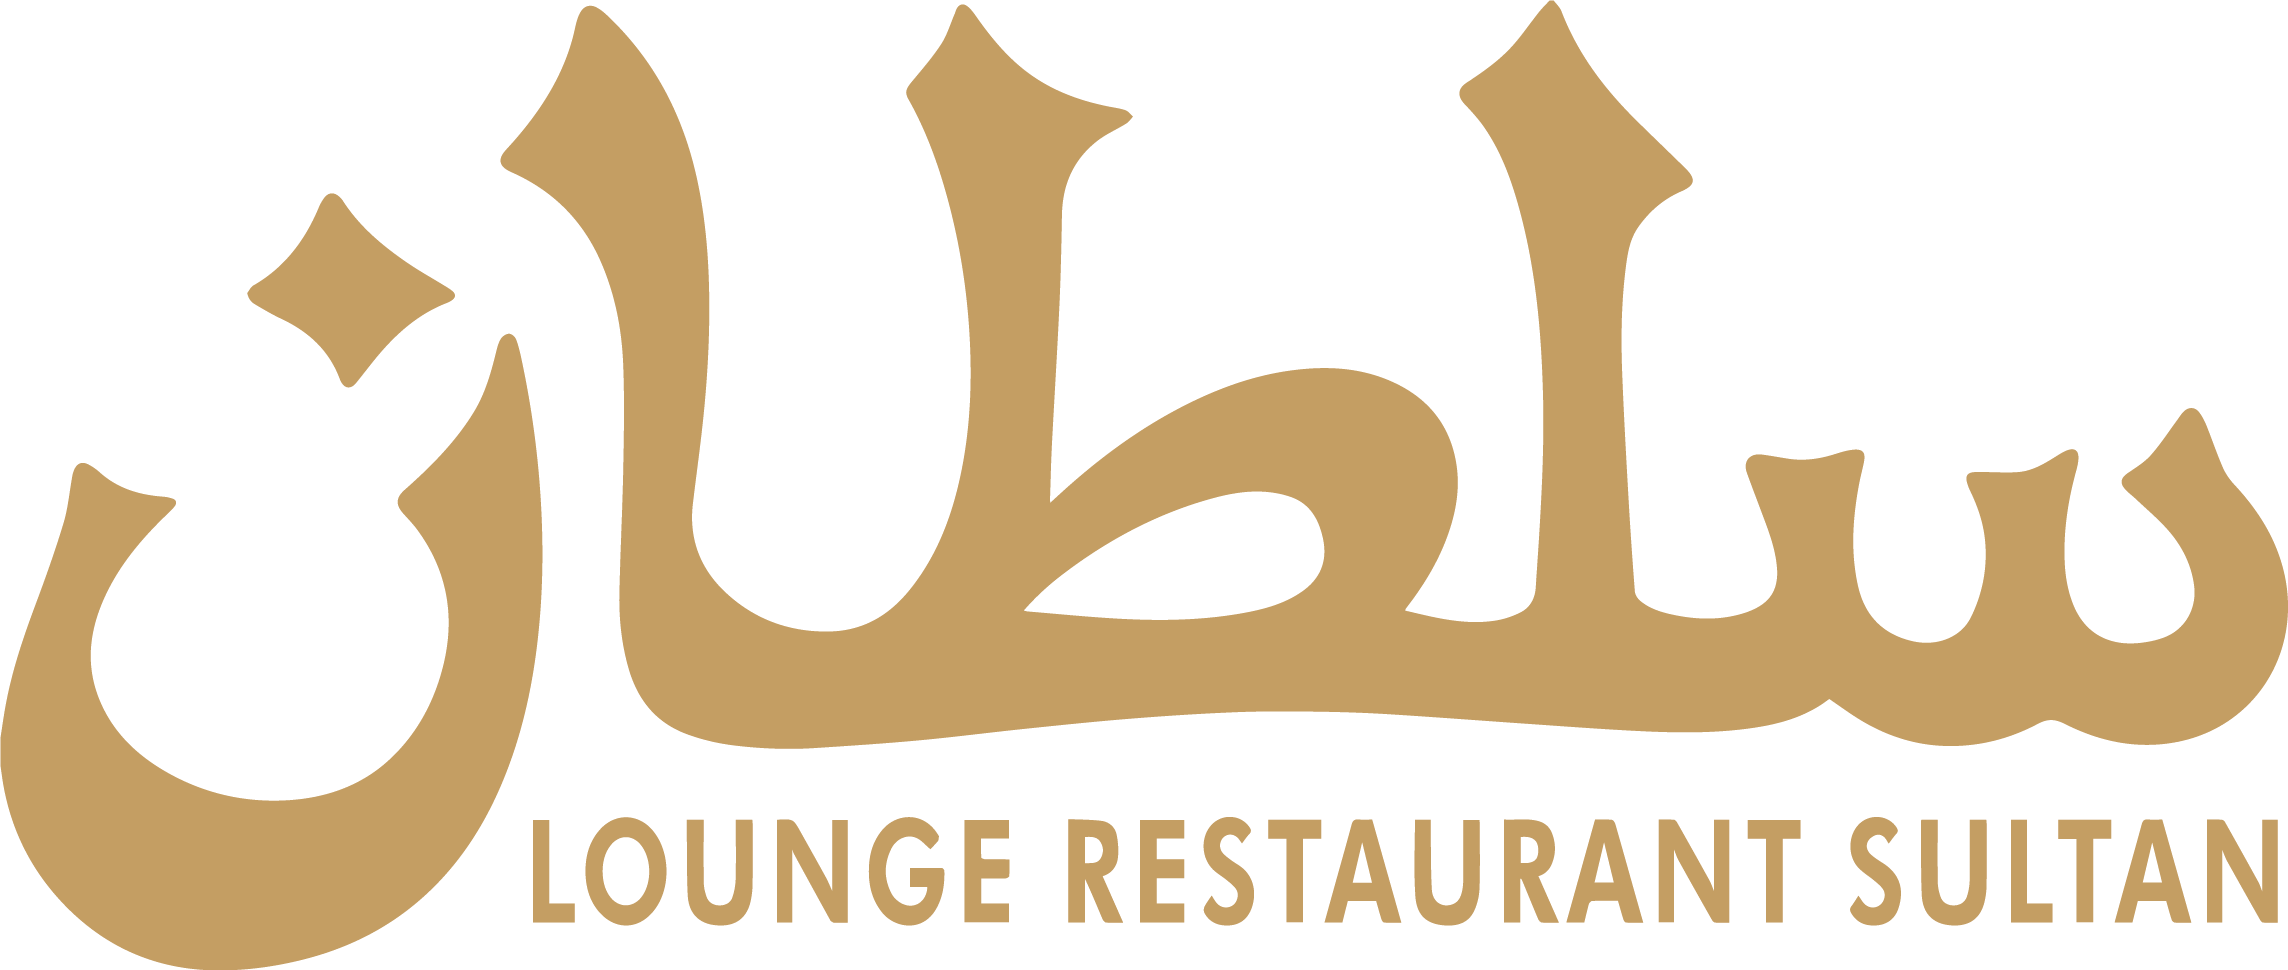 Sultan lounge logo